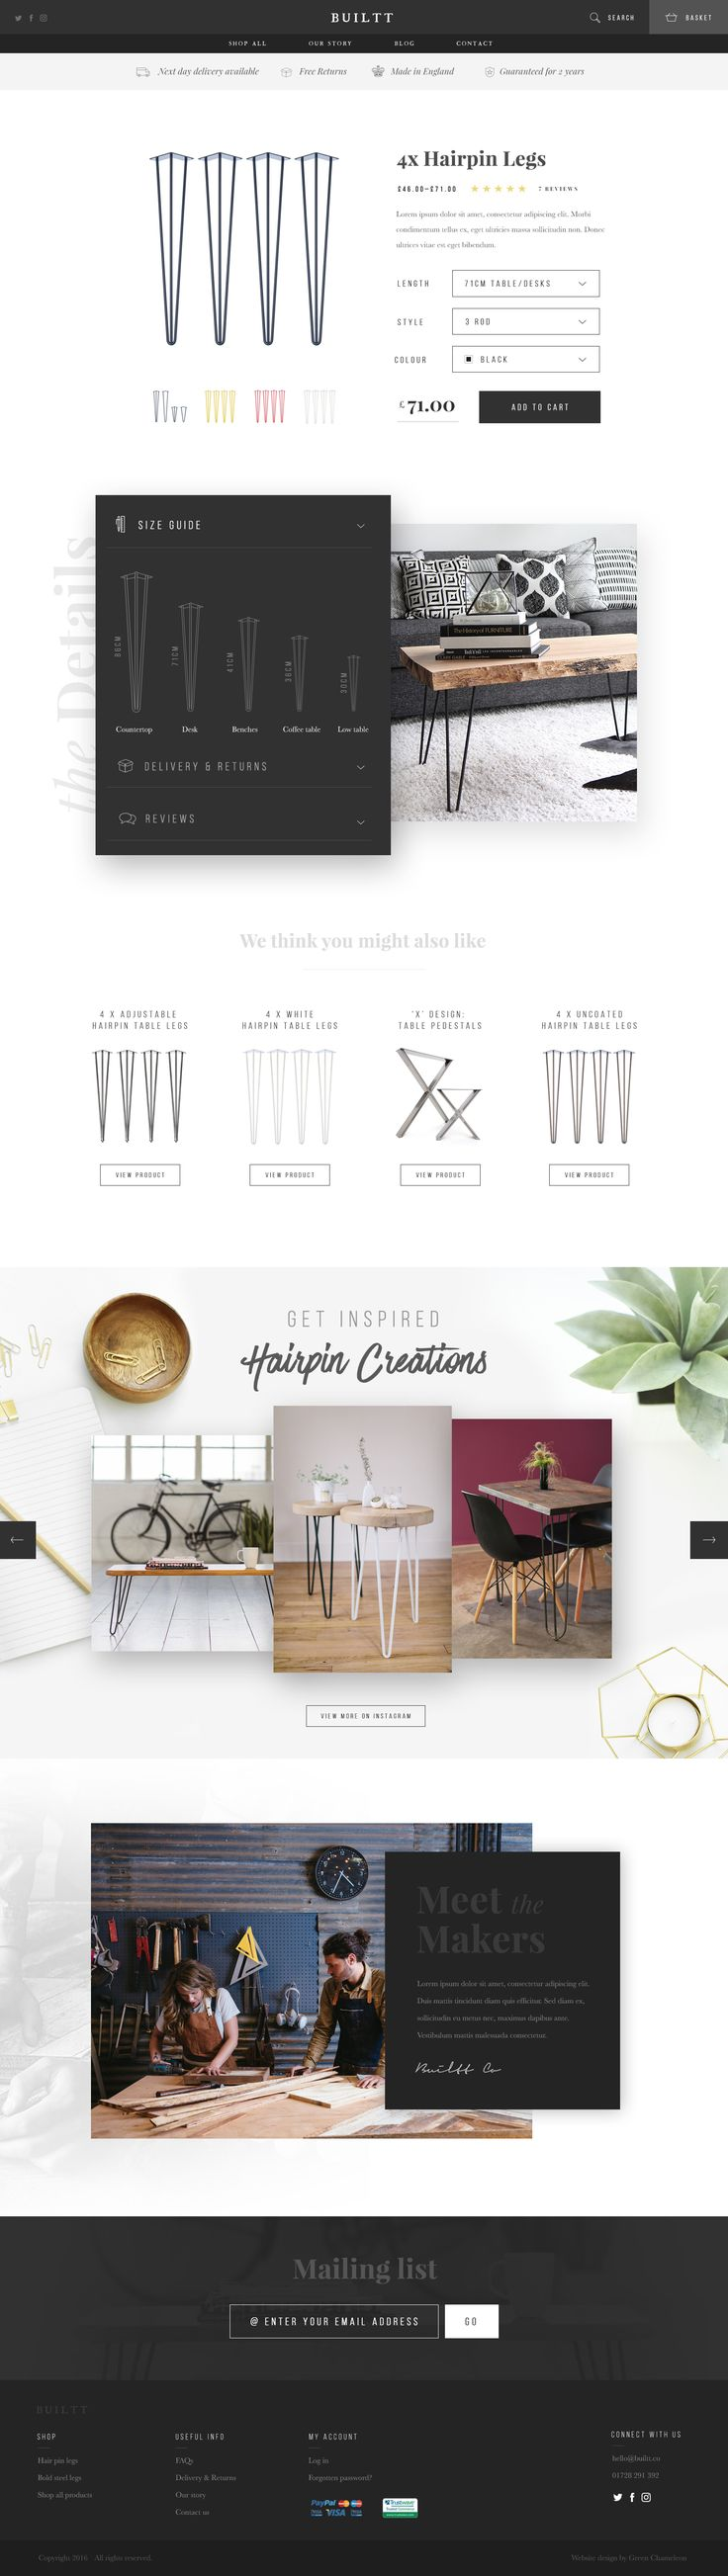 466 best web images on Pinterest | Web layout, Website layout and ...